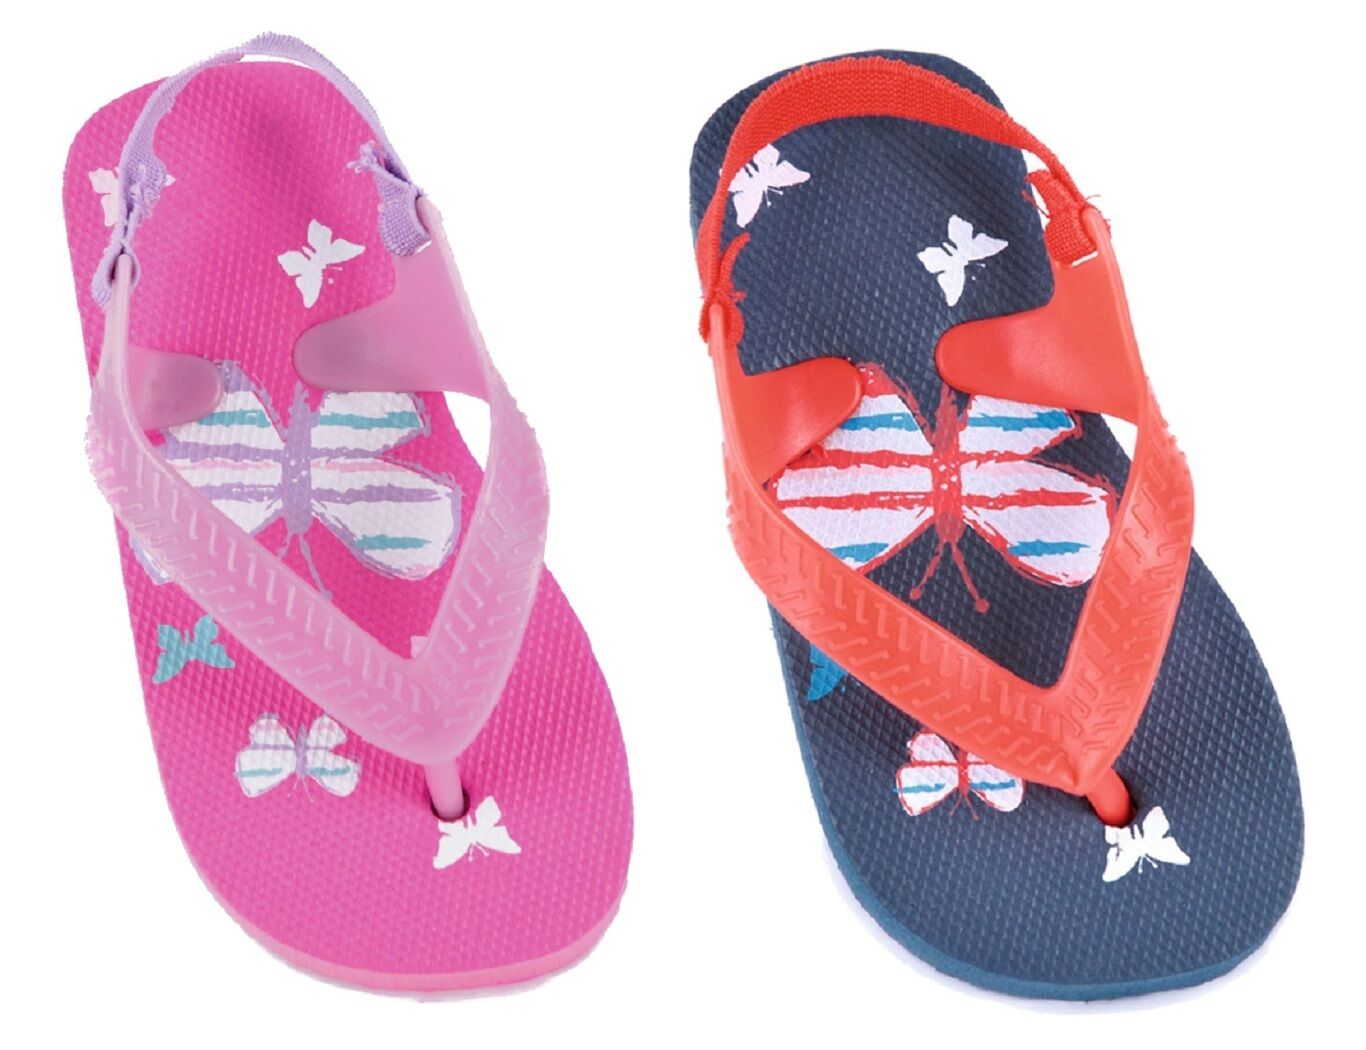 Girls / Kids / Toddlers Butterfly Design Flip Flops with Ela